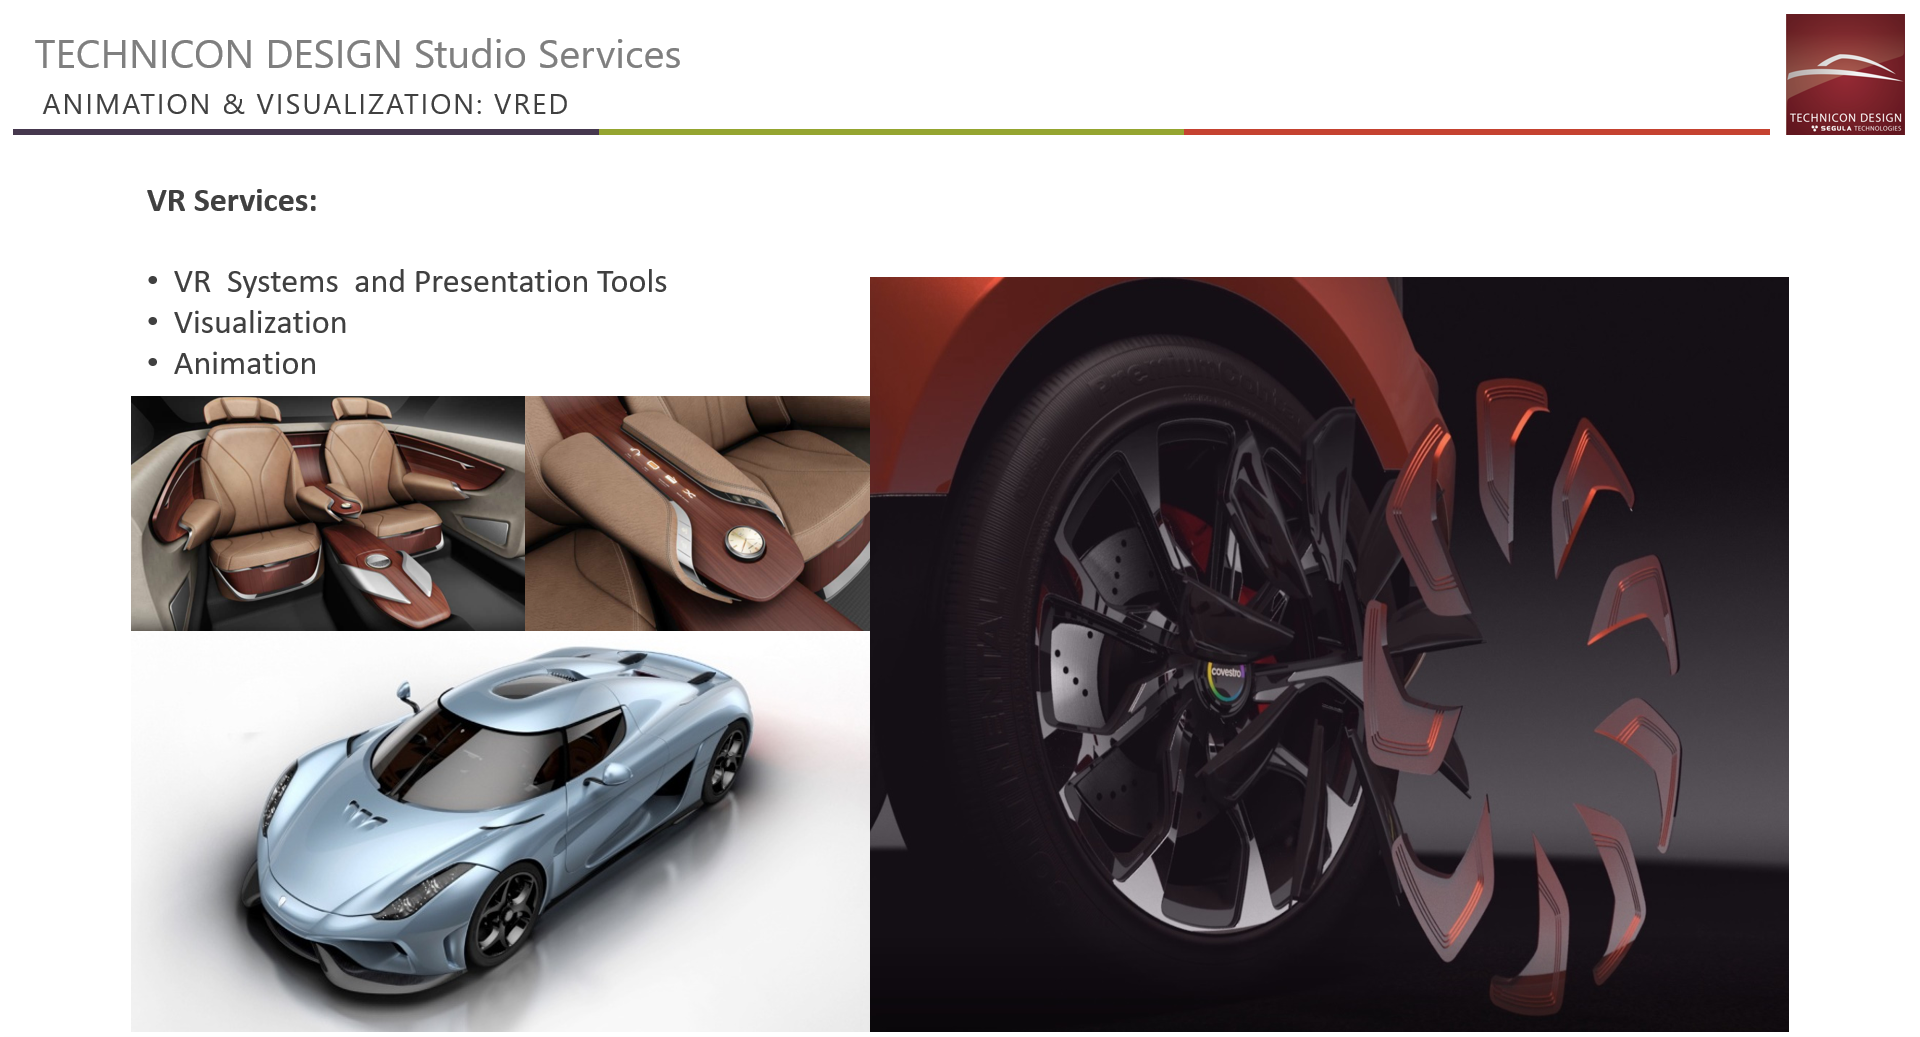 TD Studio Services - VRED.png